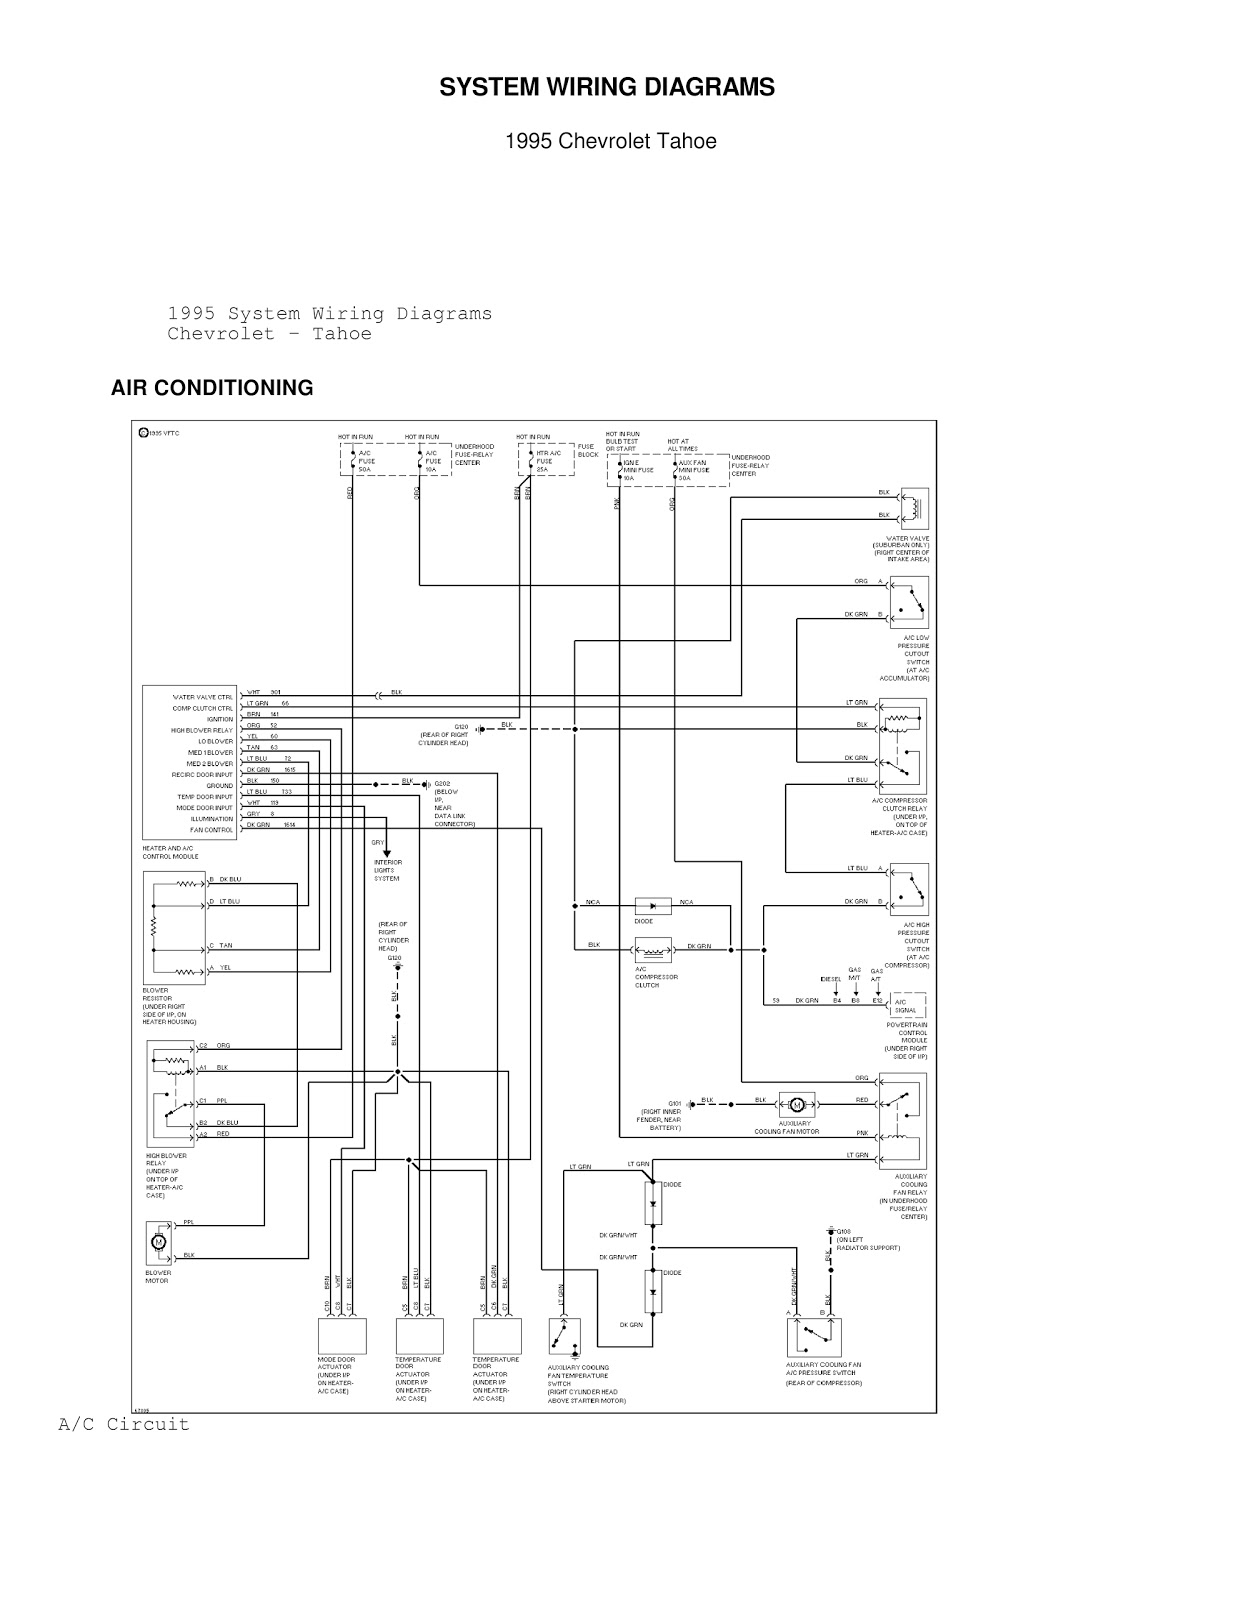 1995 chevrolet tahoe system wiring diagrams air 1995 chevy suburban wiring diagram on a fuel pump wiring schematics for 95 tahoe [ 1236 x 1600 Pixel ]